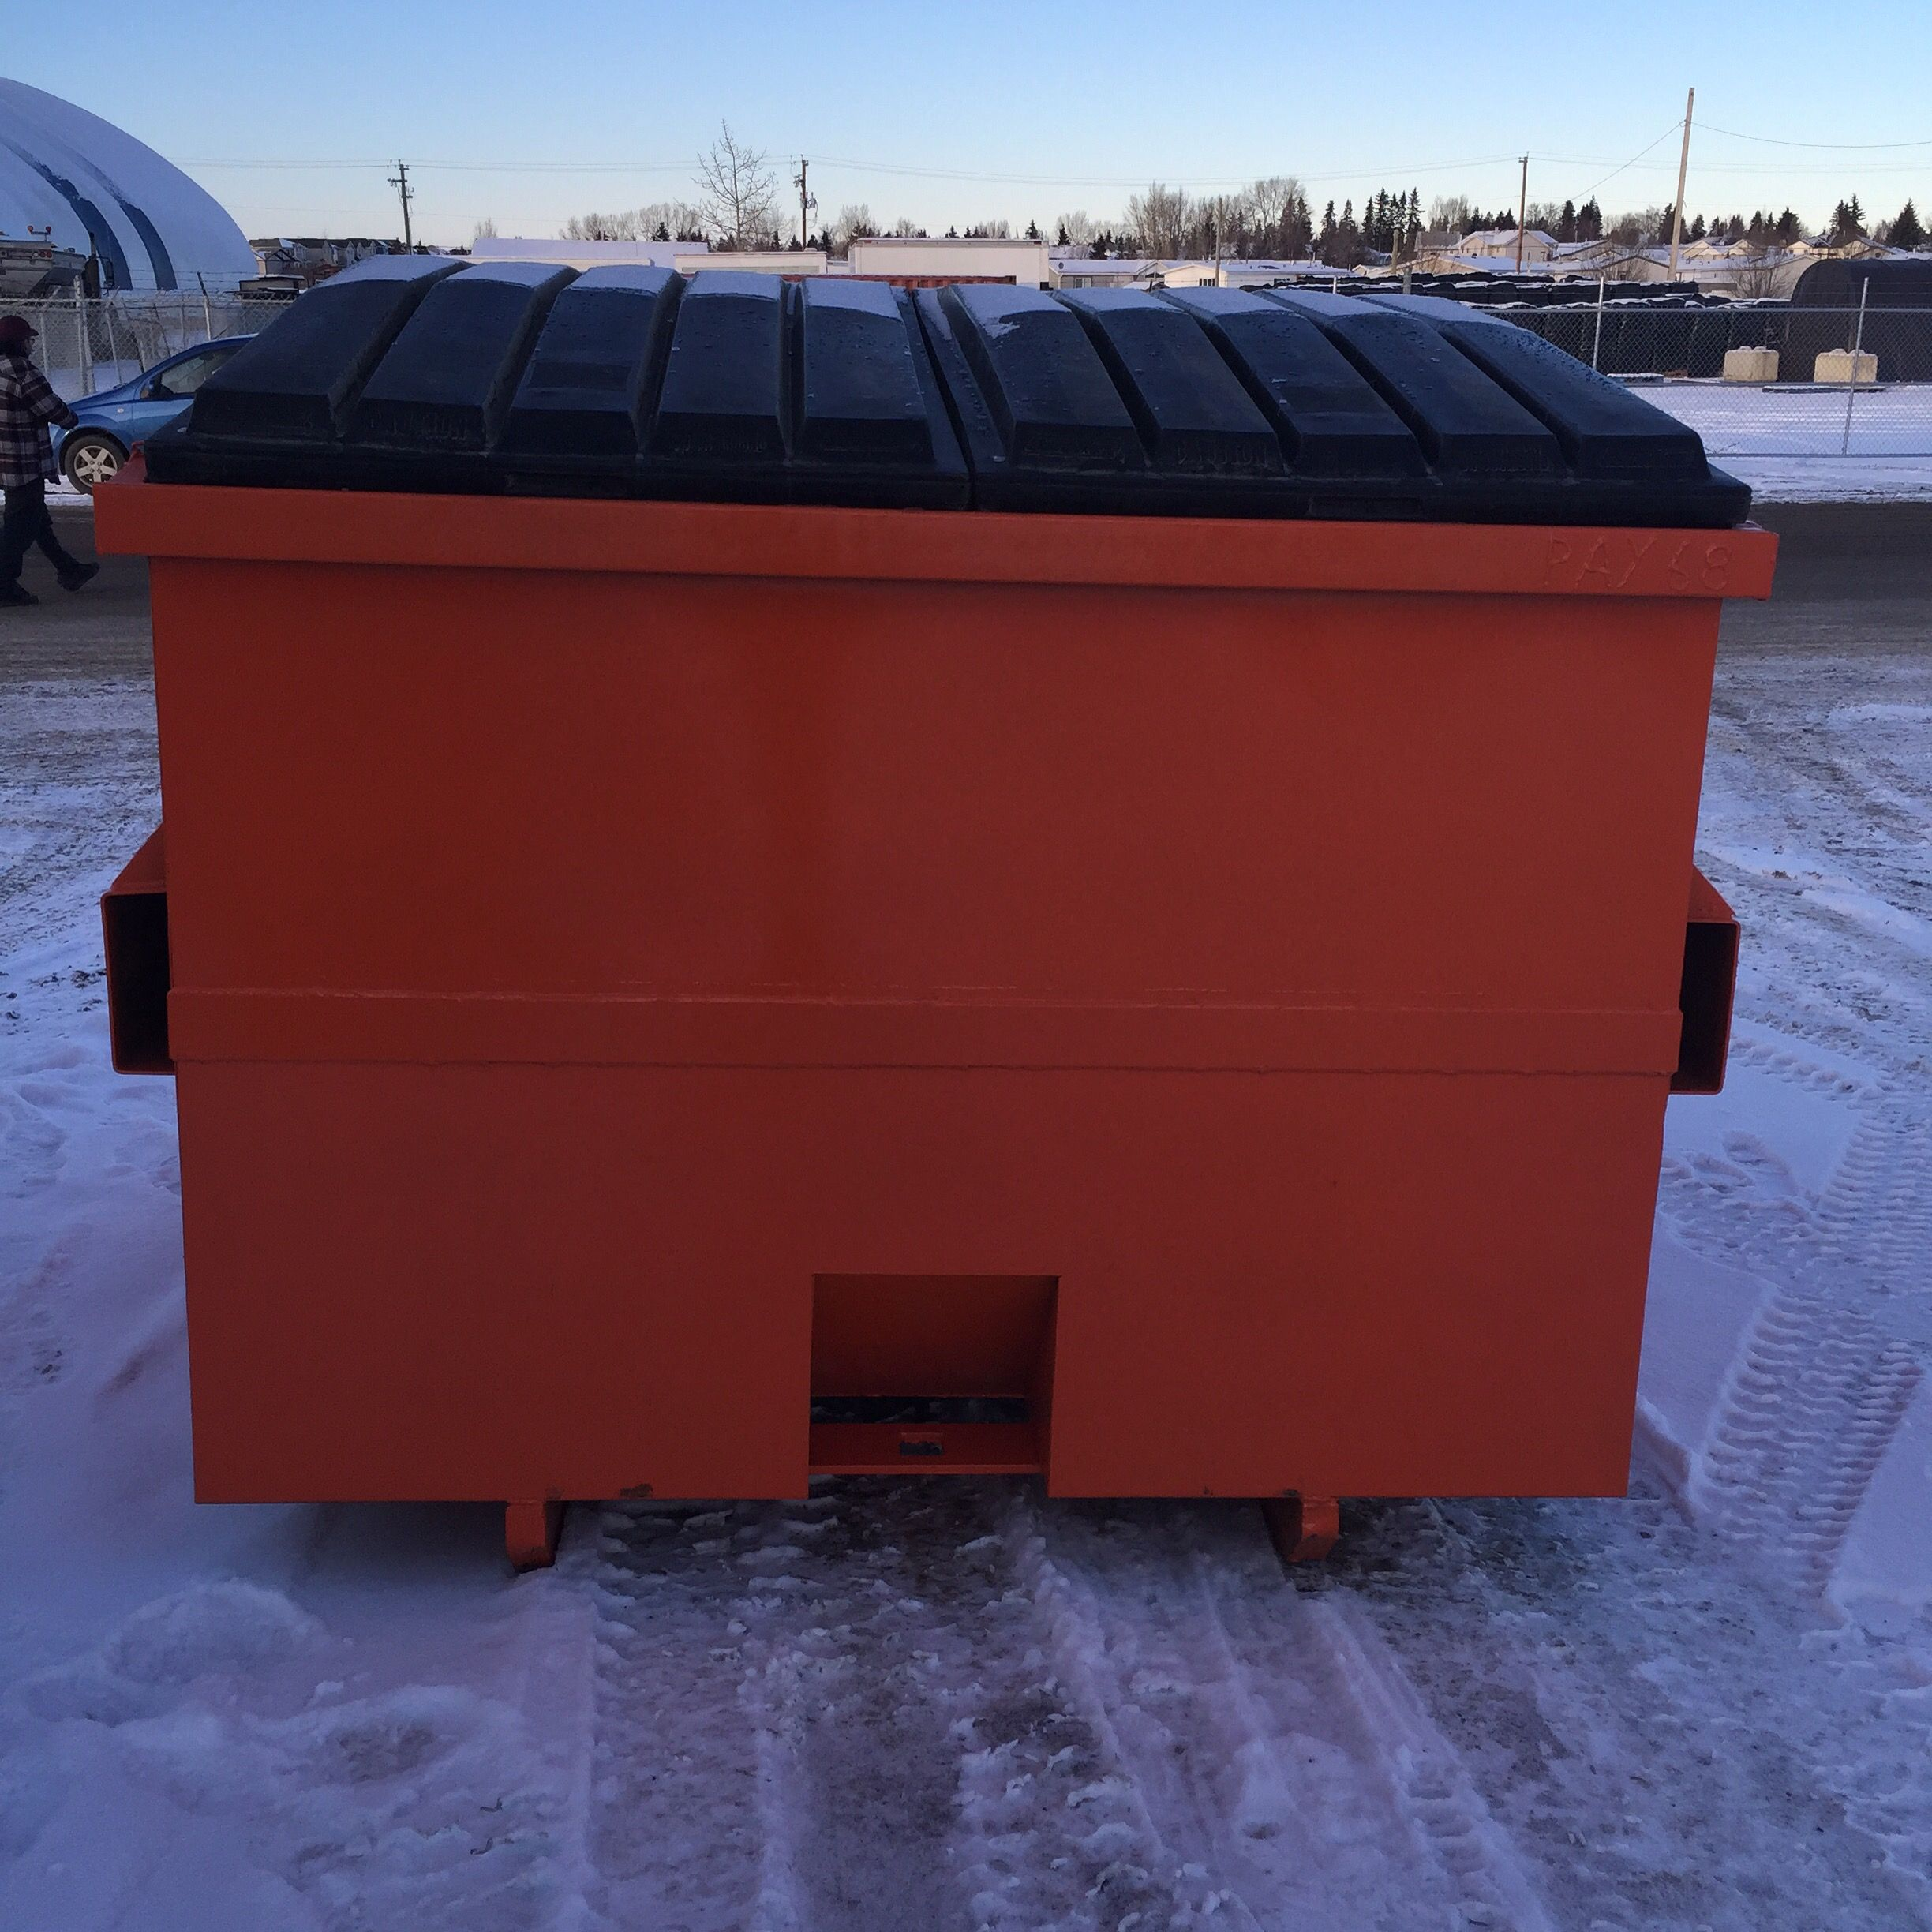 Rent Bin Calgary Airdrie Okotoks Alberta Calgary Home Improvement Contractors Calgary Alberta